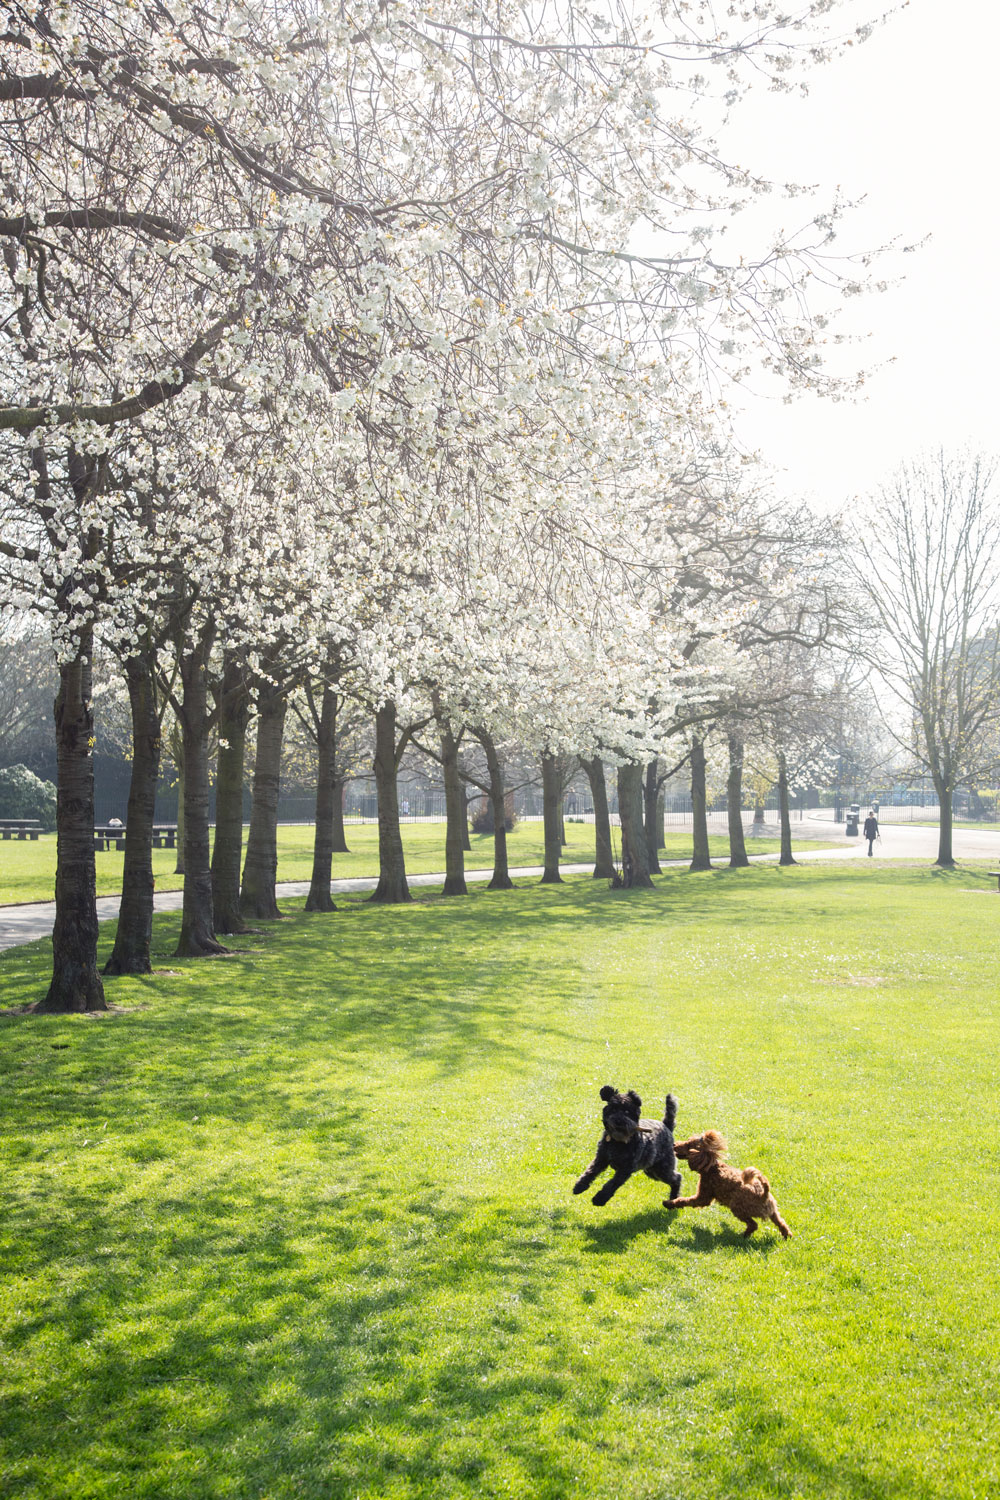 Victoria Park, no. 33 in An Opinionated Guide to East London © Charlotte Schreiber